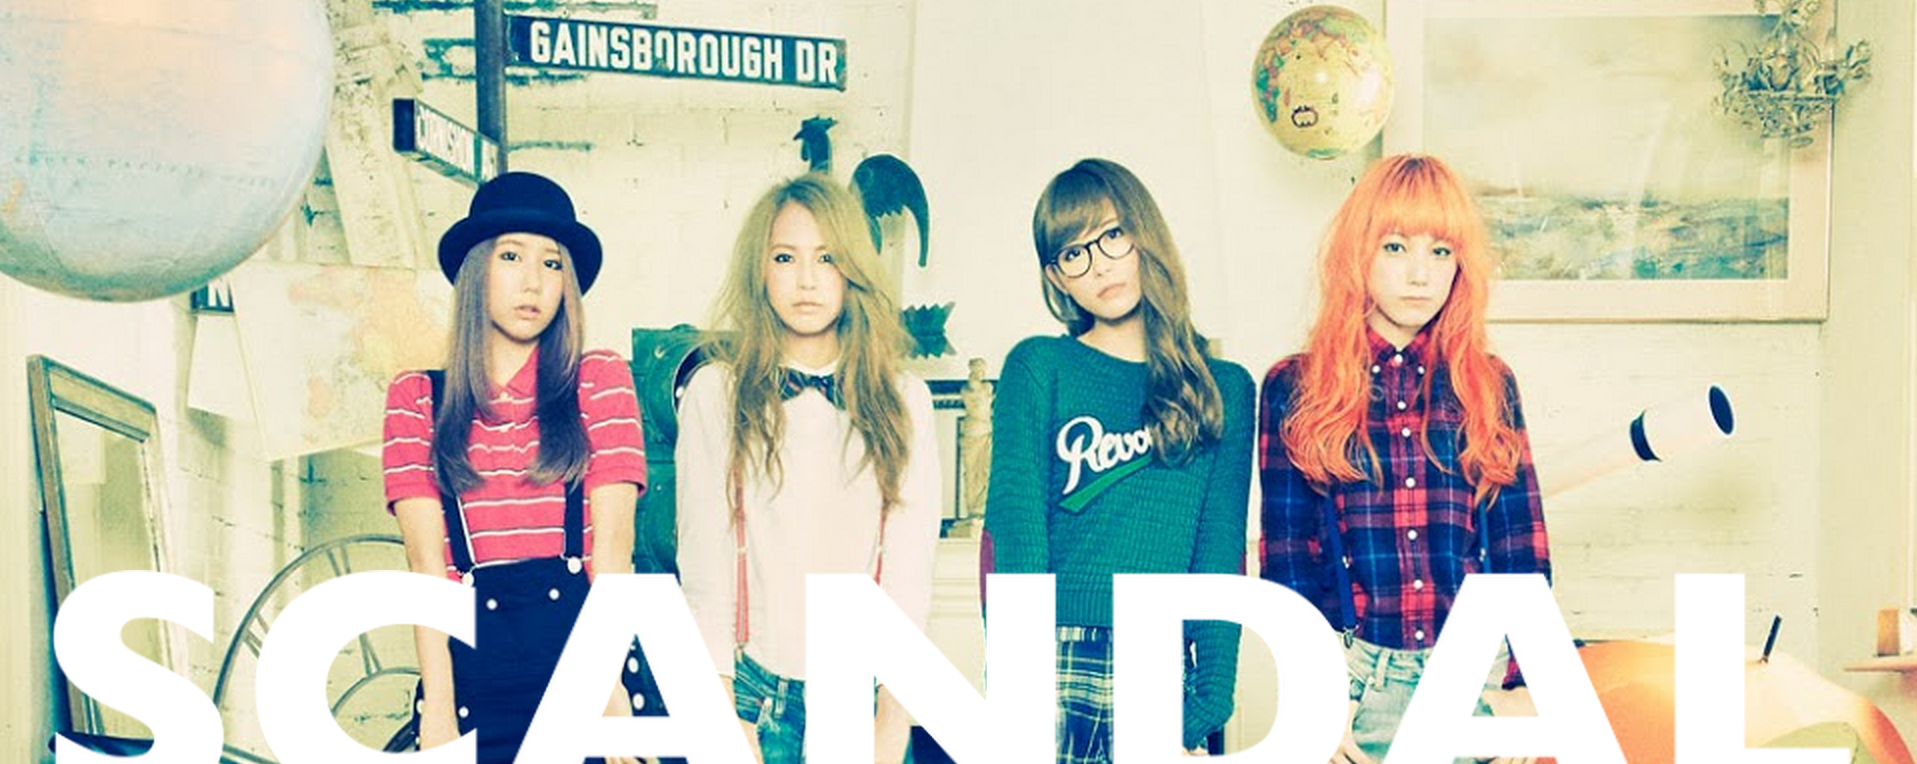 SCANDAL WORLD TOUR 2015 In Singapore